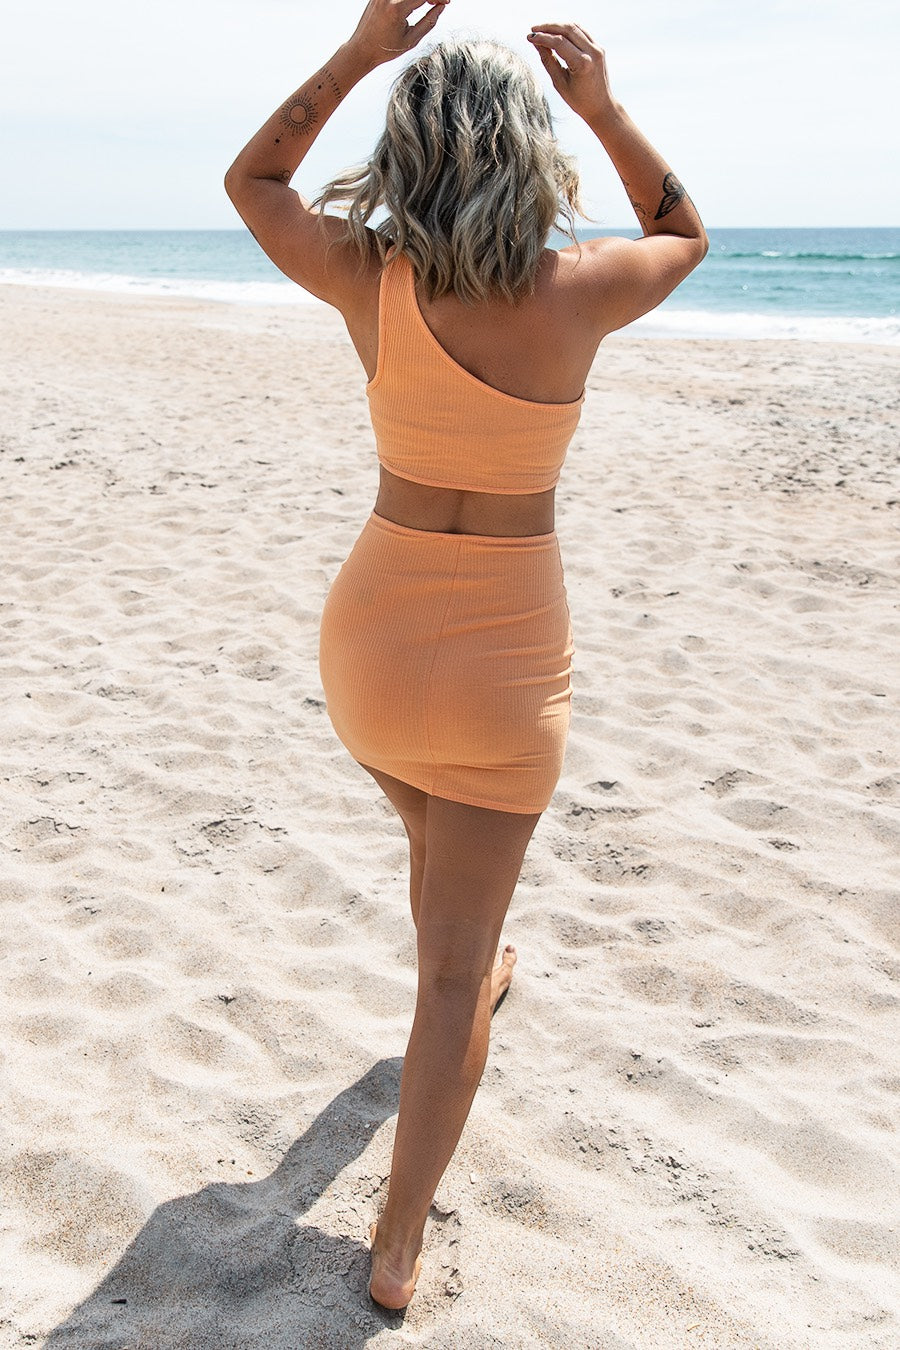 woman waling on a white sand beach in a peach cutout dress